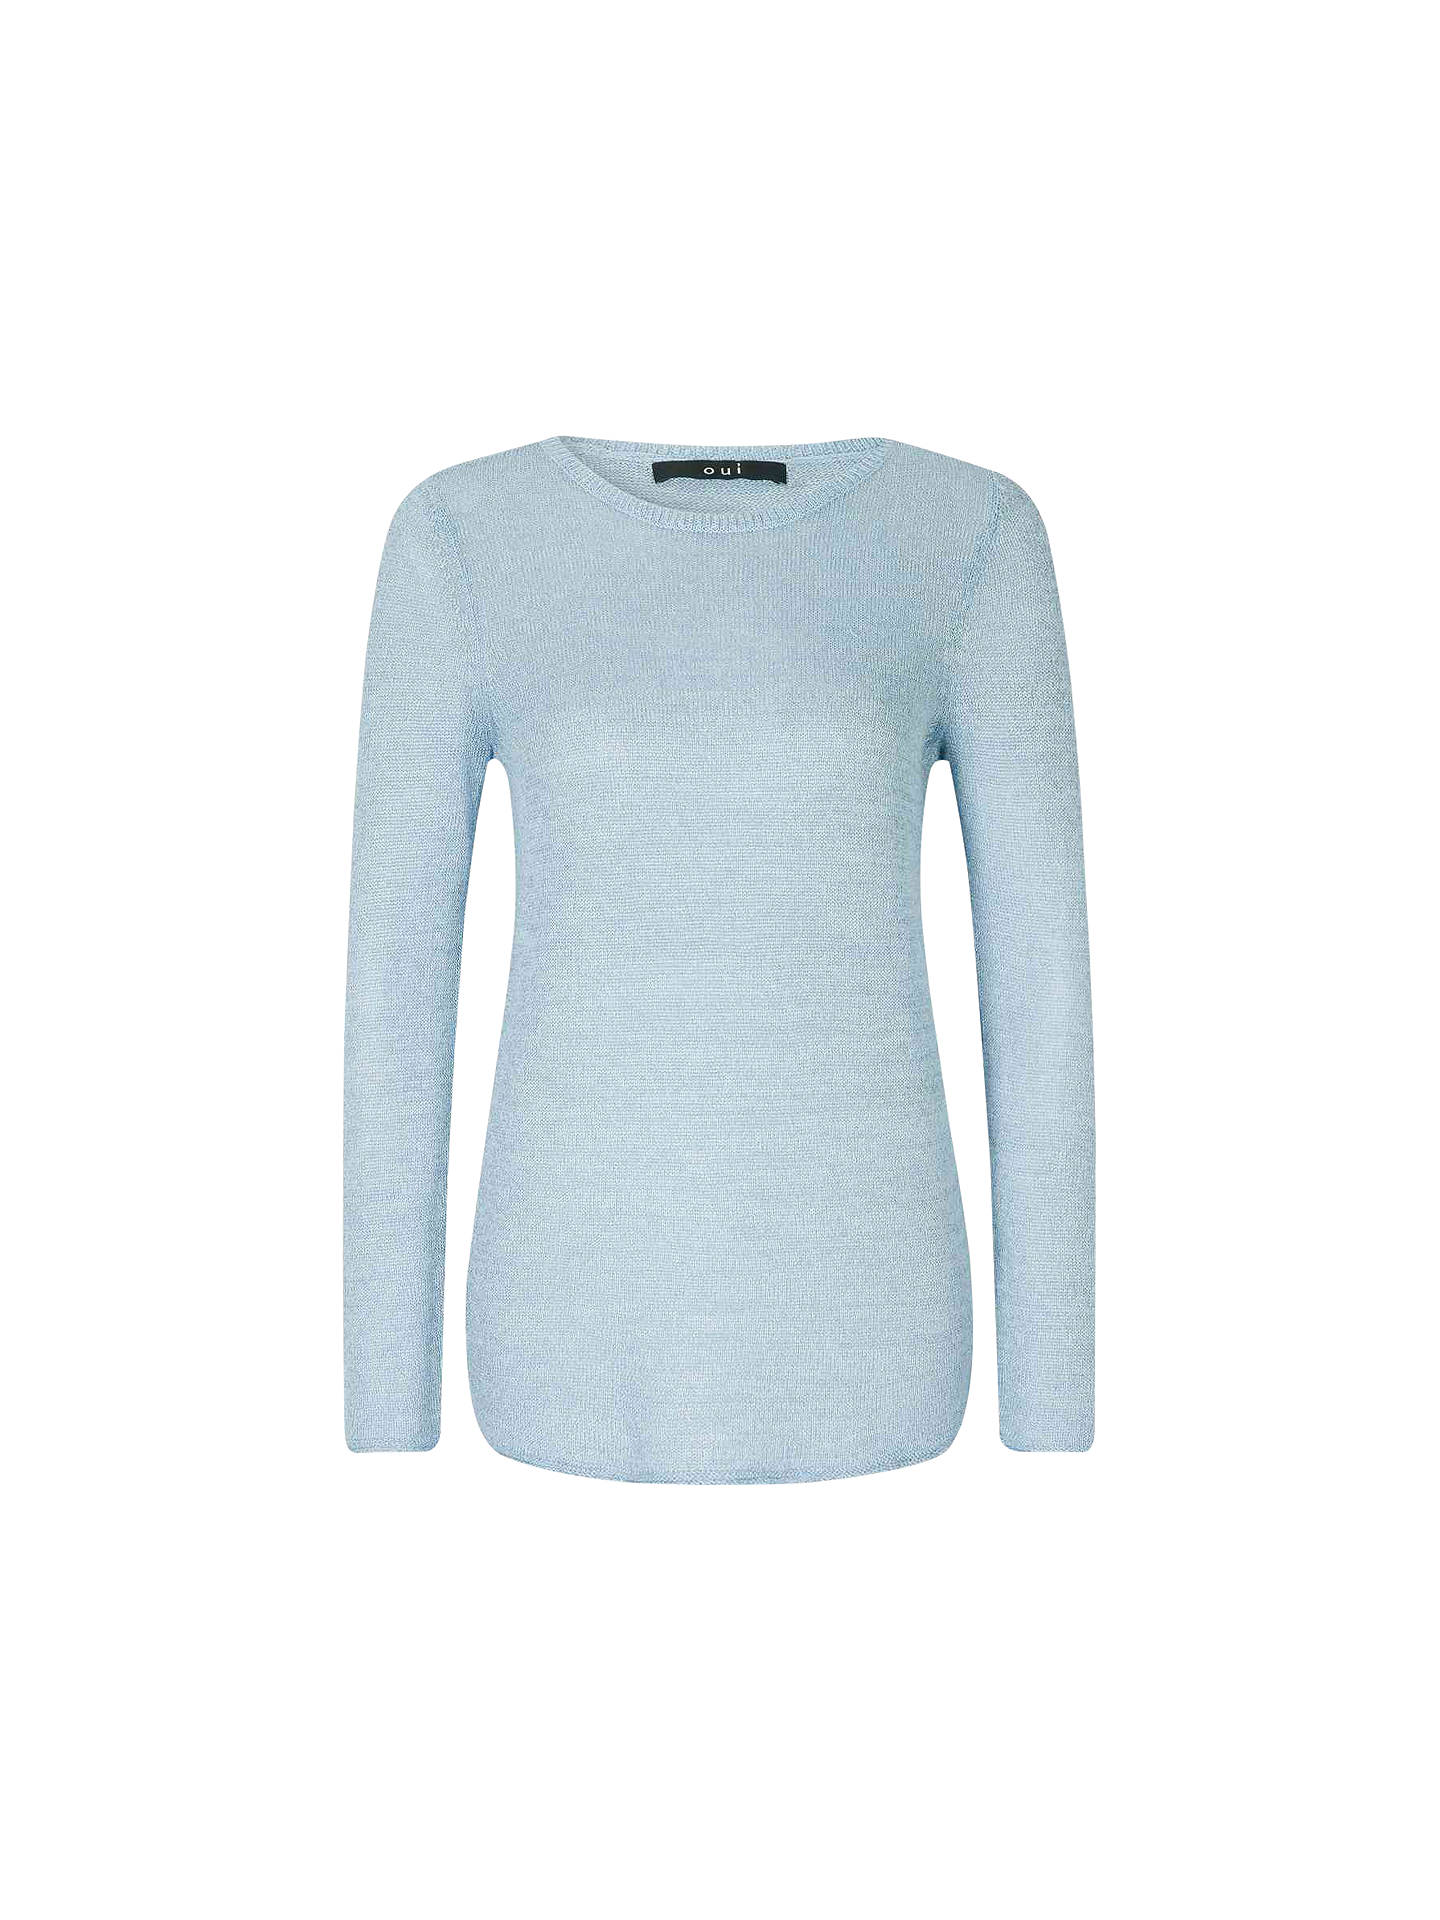 debfb94e9bdbbb Buy Oui Knit Jumper, Light Blue, 8 Online at johnlewis.com ...